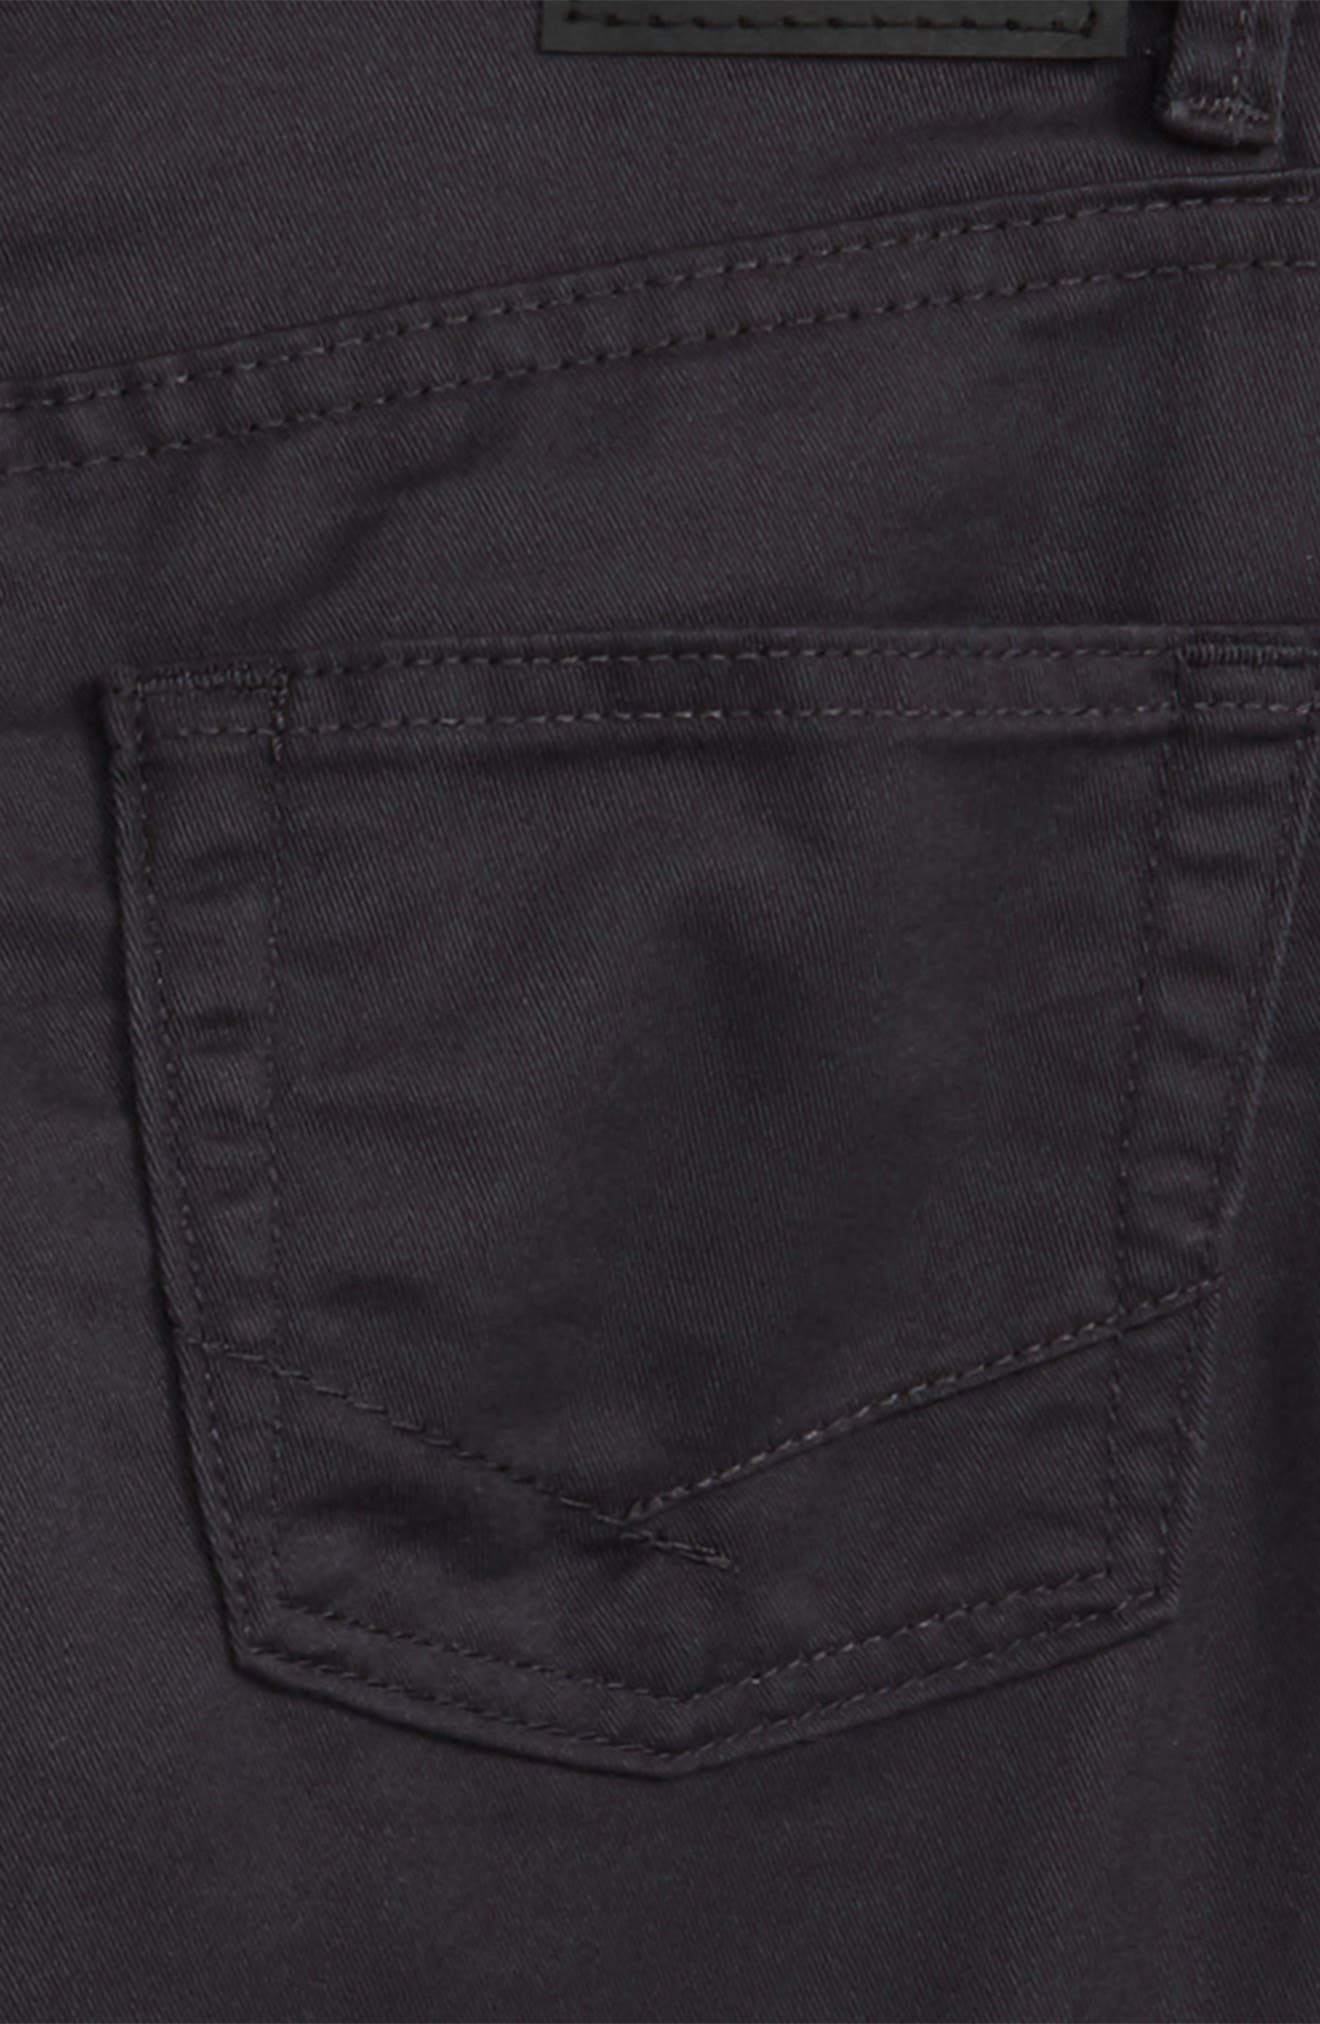 Covina II - Anthony Van Engelen Twill Shorts,                             Alternate thumbnail 6, color,